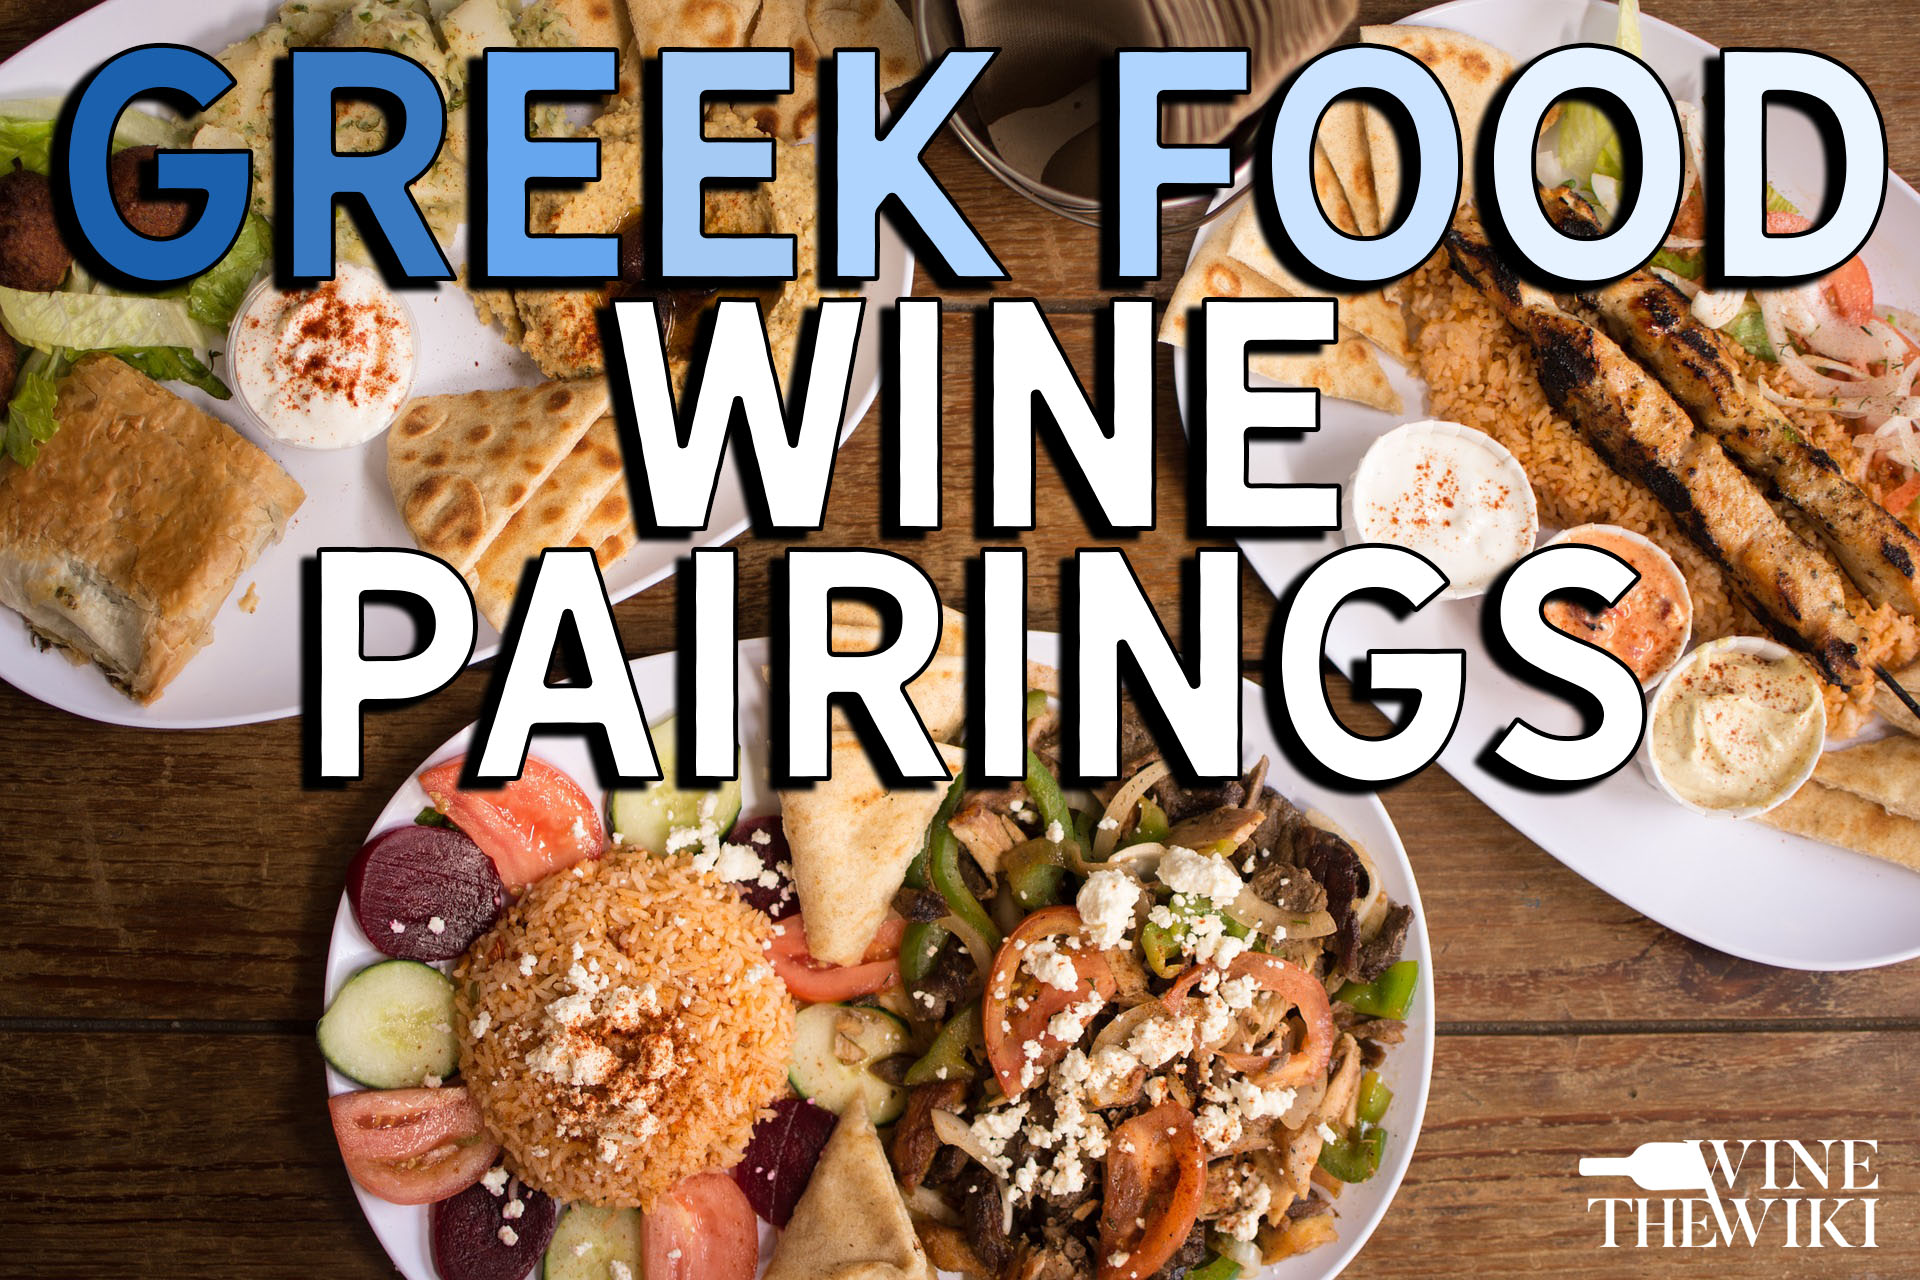 Wine With Greek Food: Six Ideas For Dinner